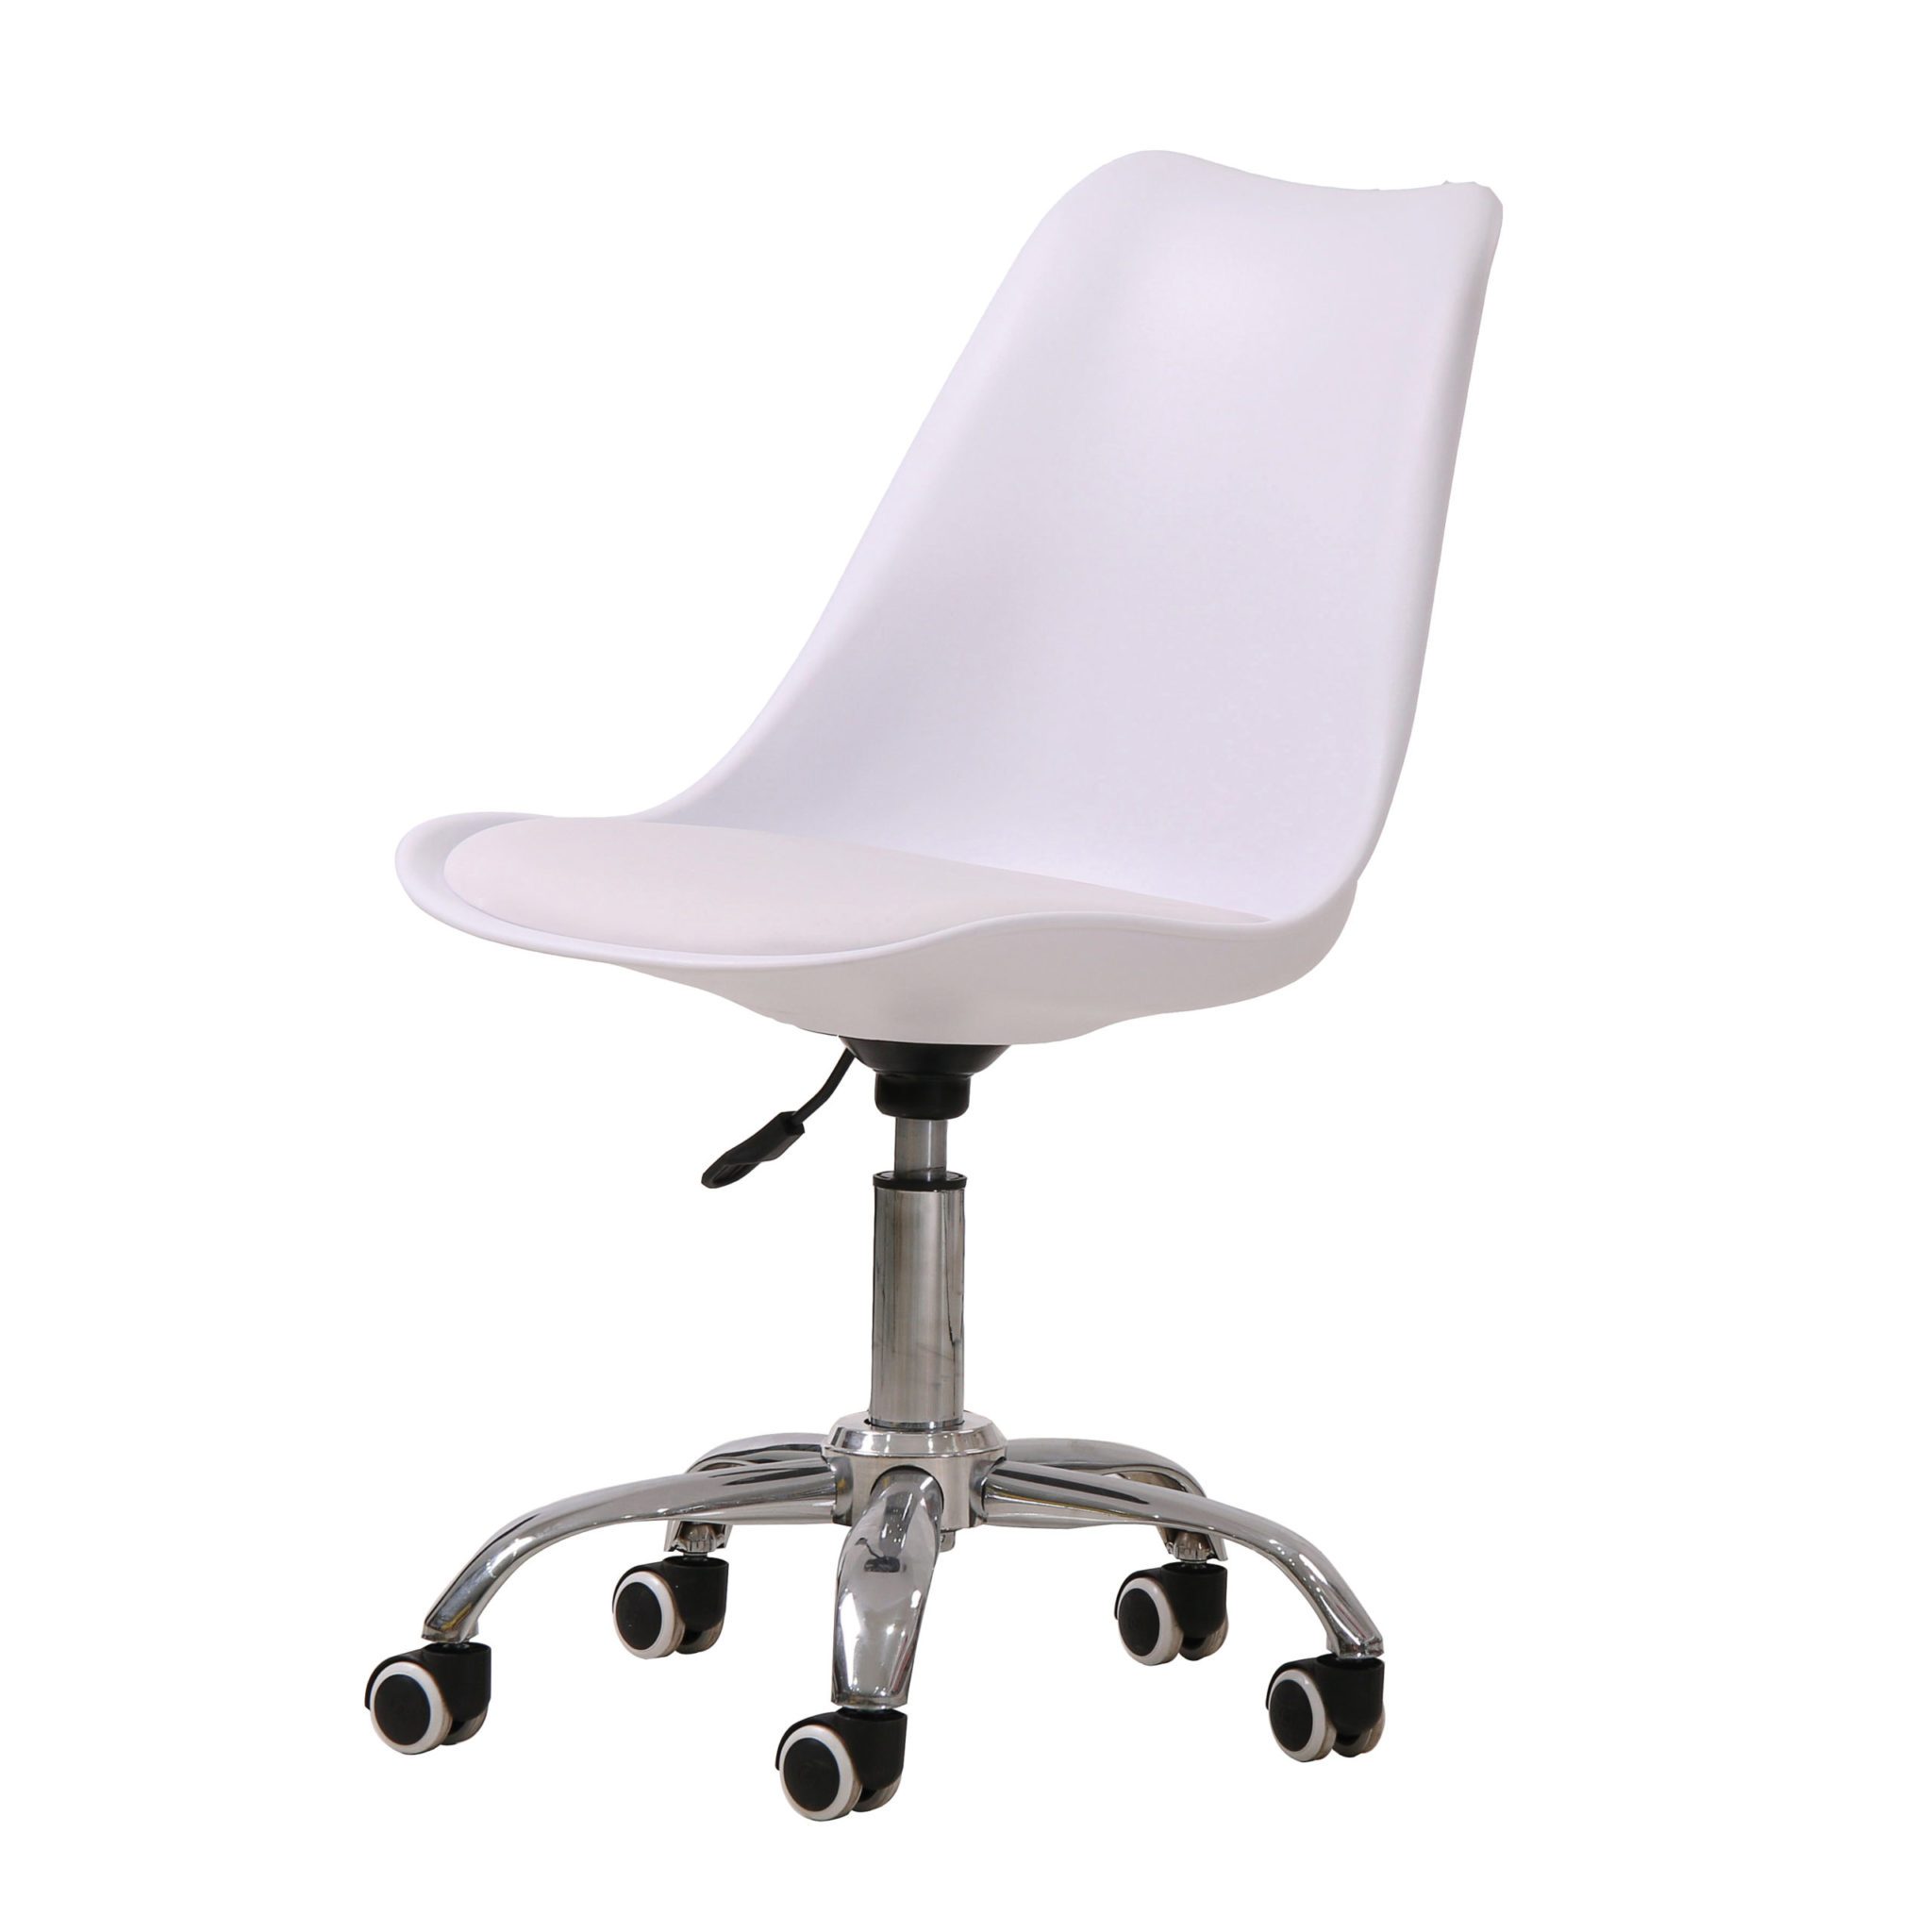 Osdera Swivel Office Chair White